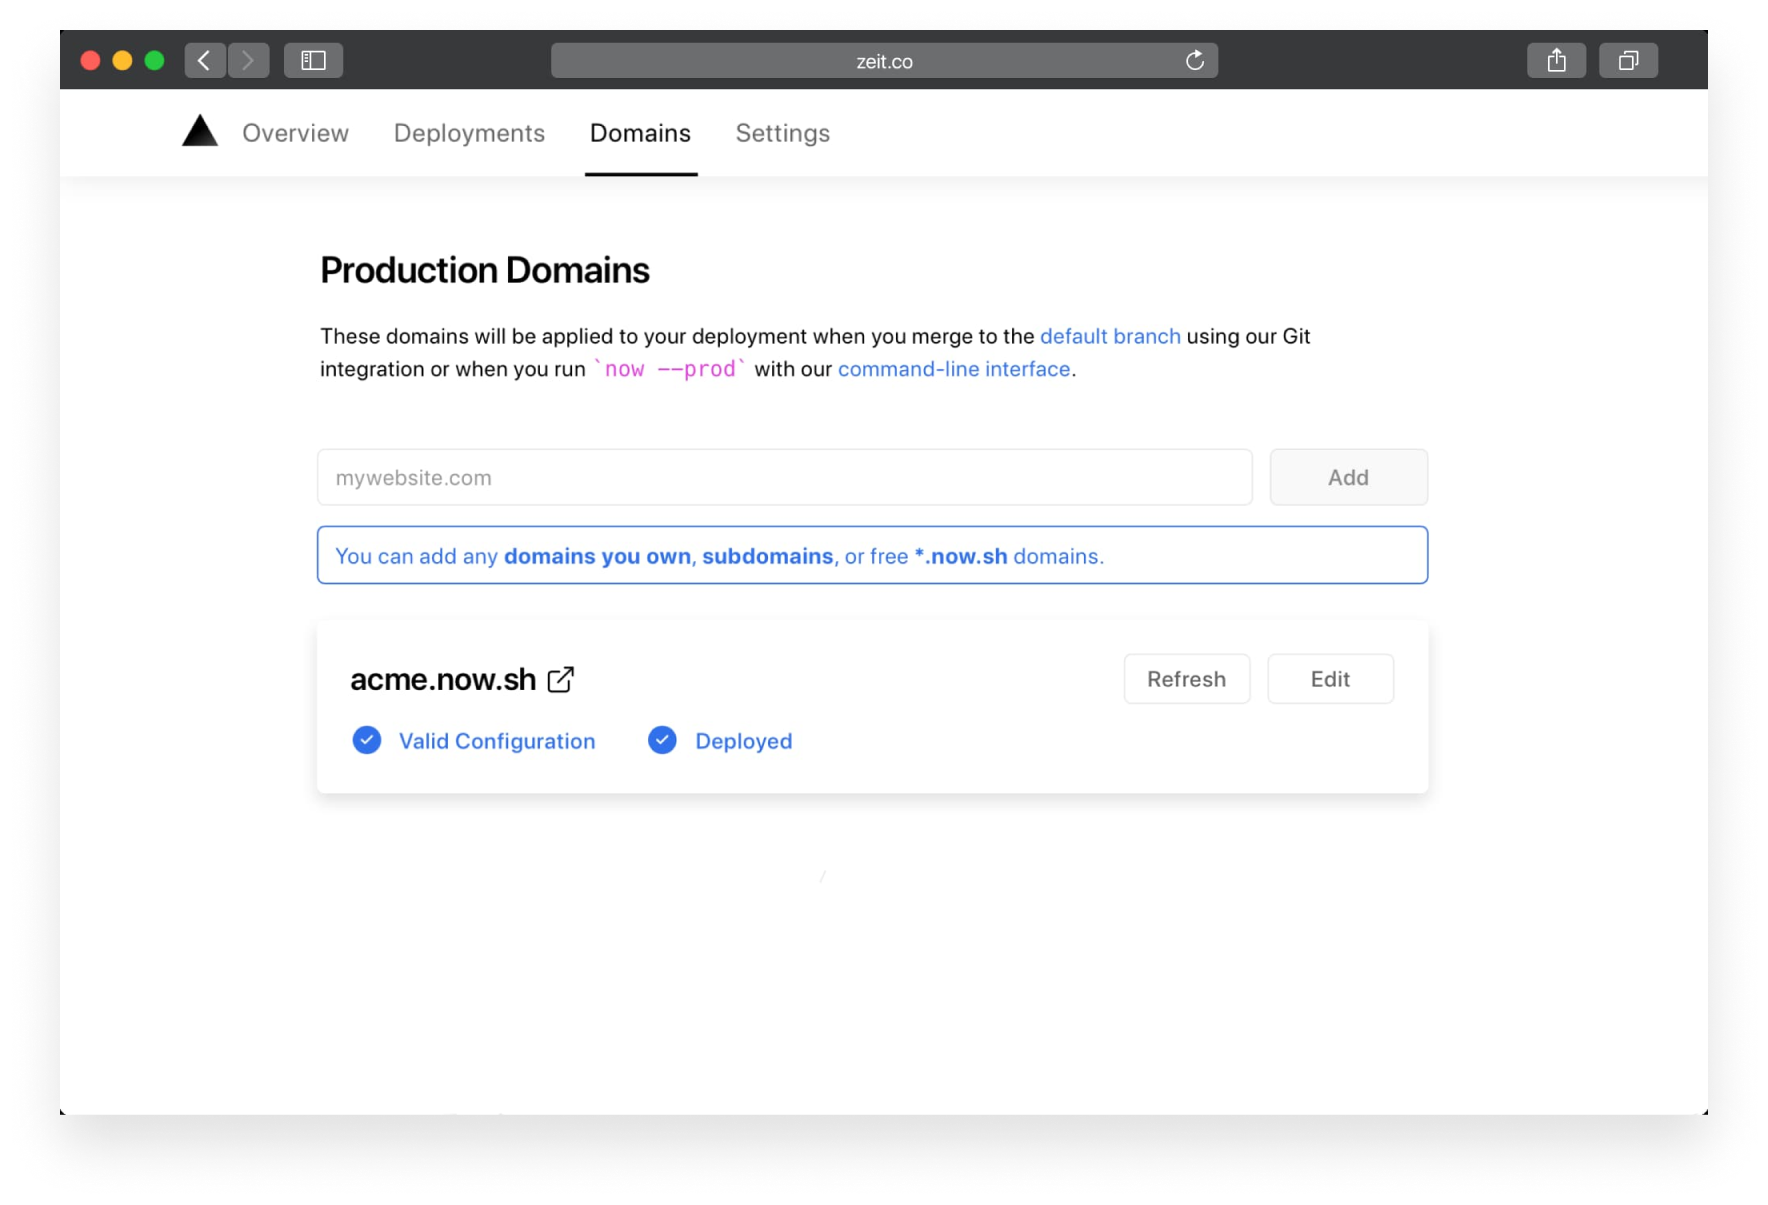 A valid production domain